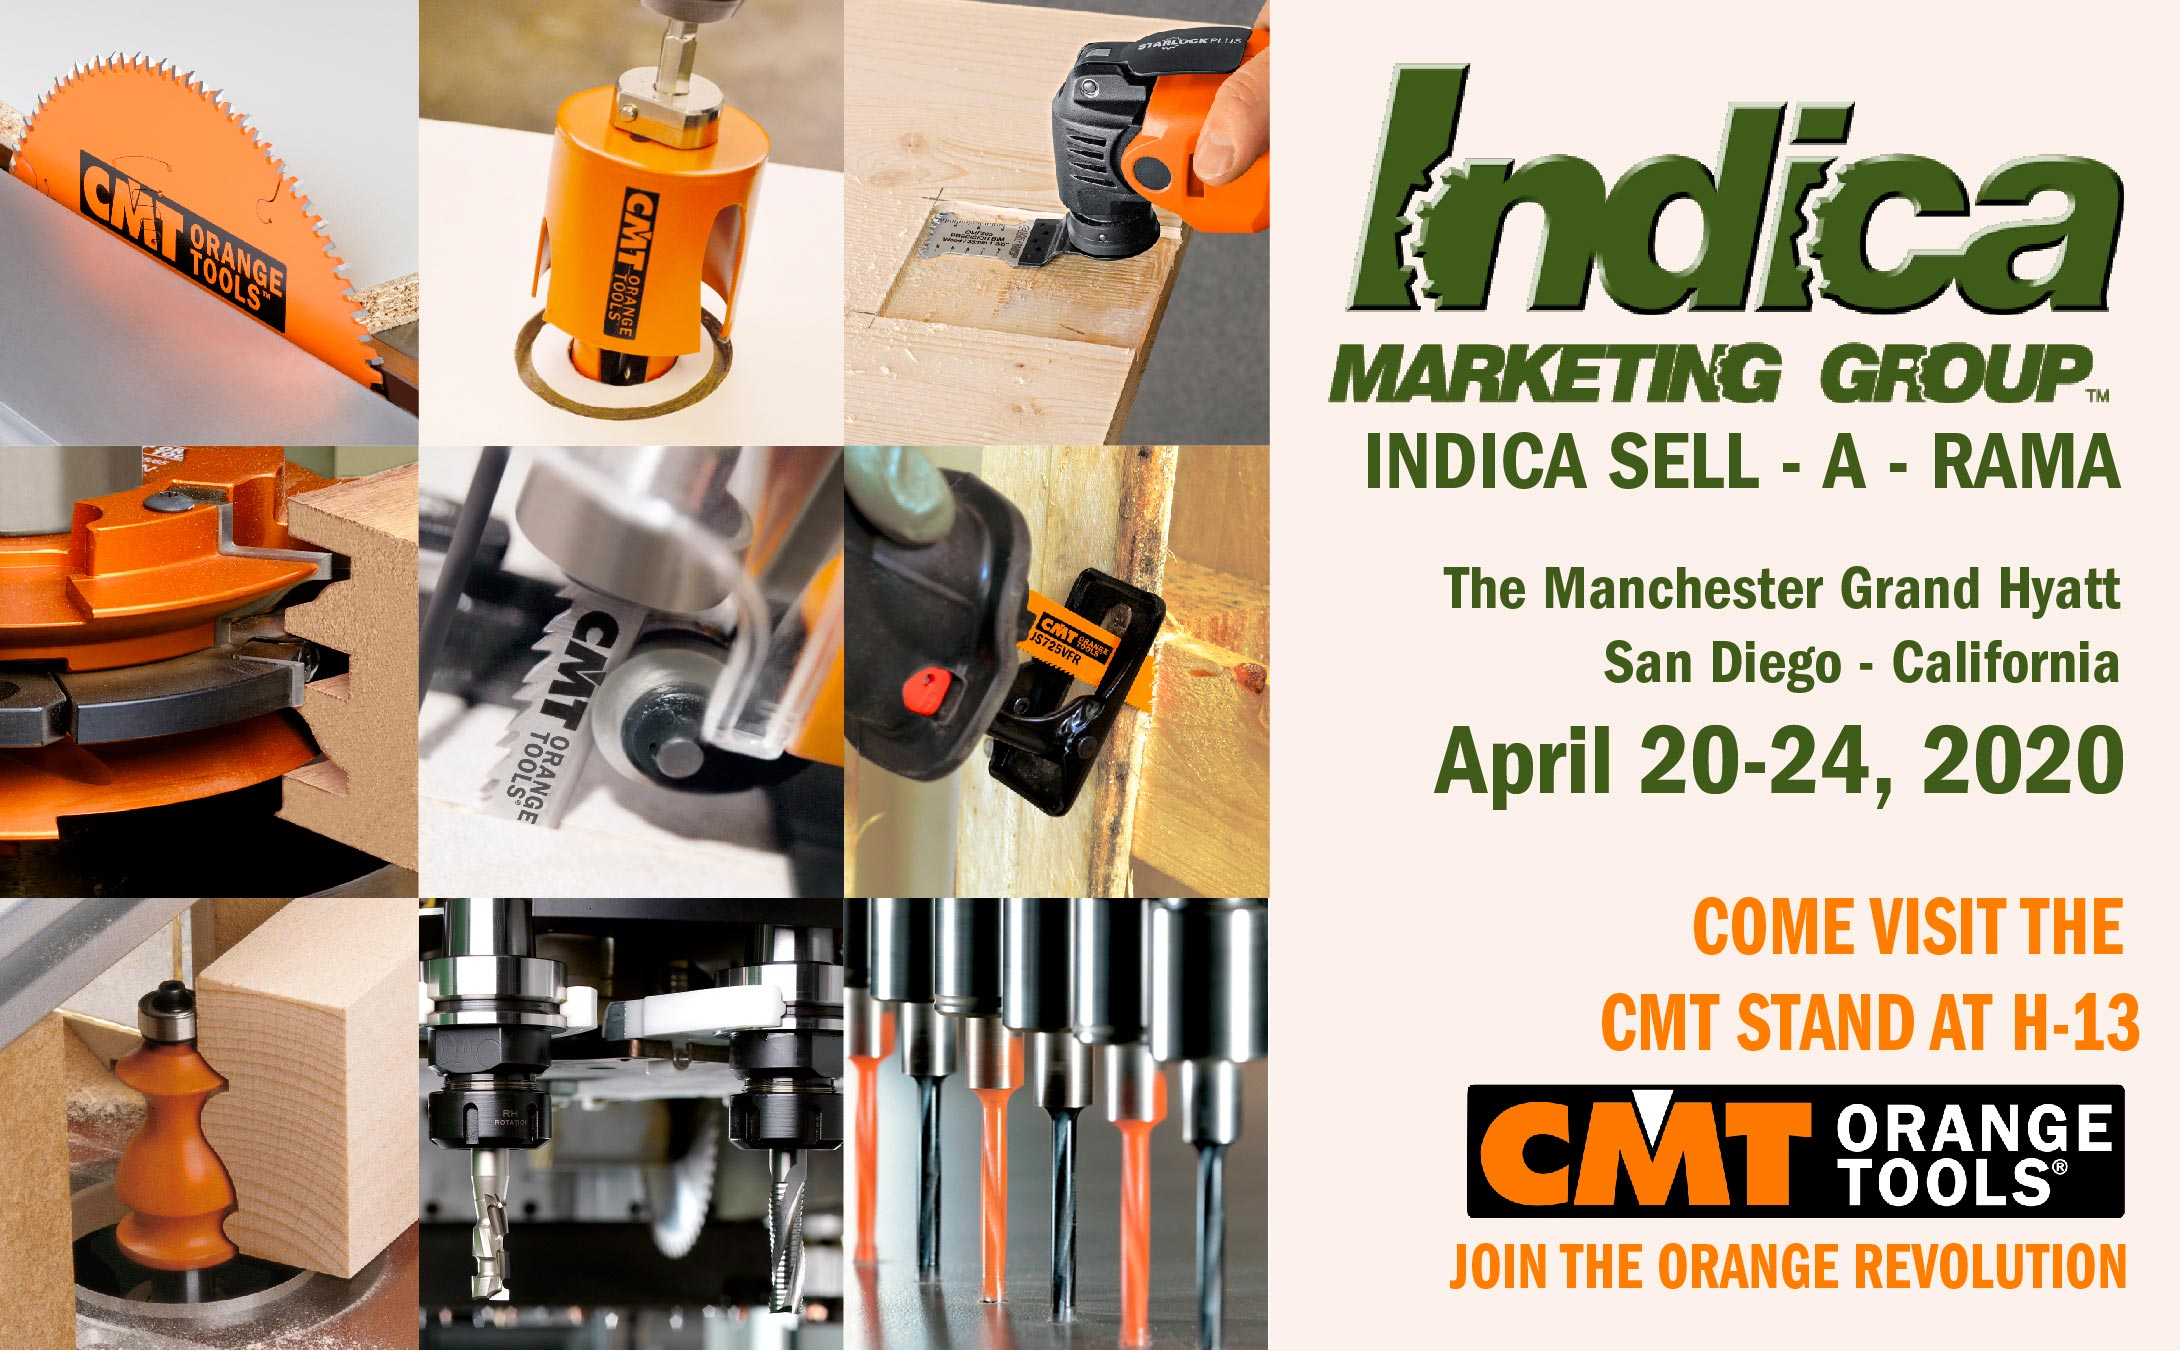 Indica Sell-A-Rama 2020 - April 20-24, 2020 - San Diego - California